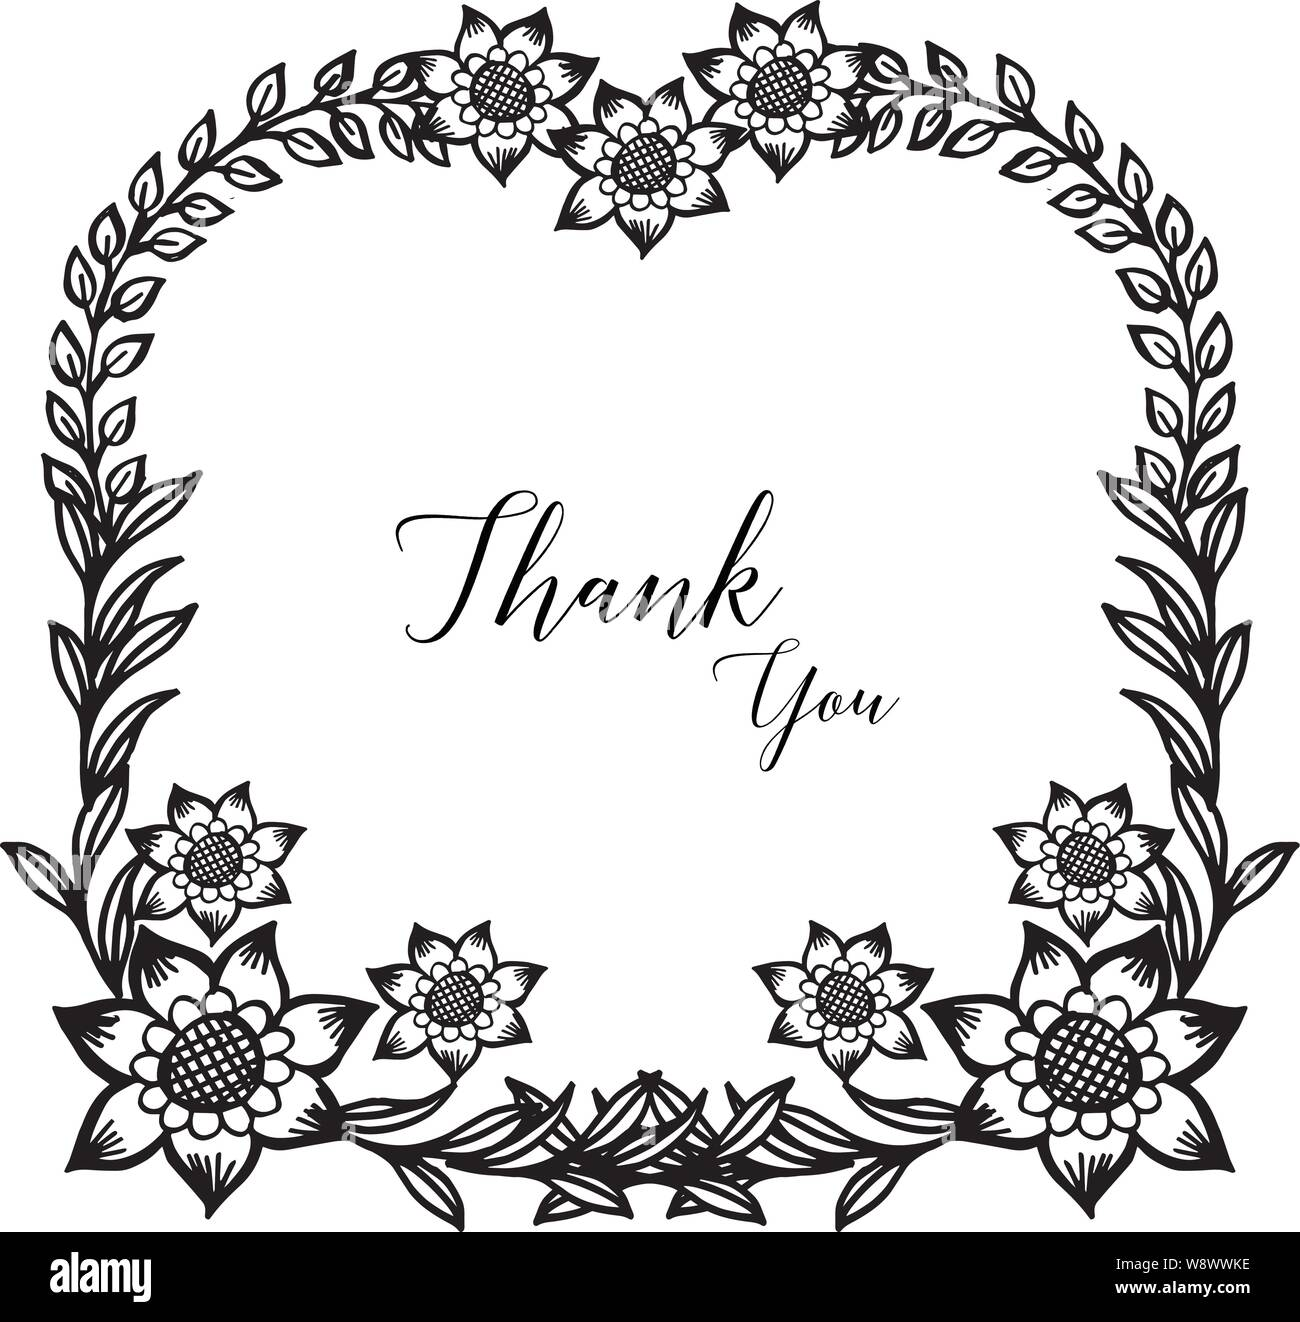 Wallpaper Of Card Thank You Ornate Of Beautiful Floral